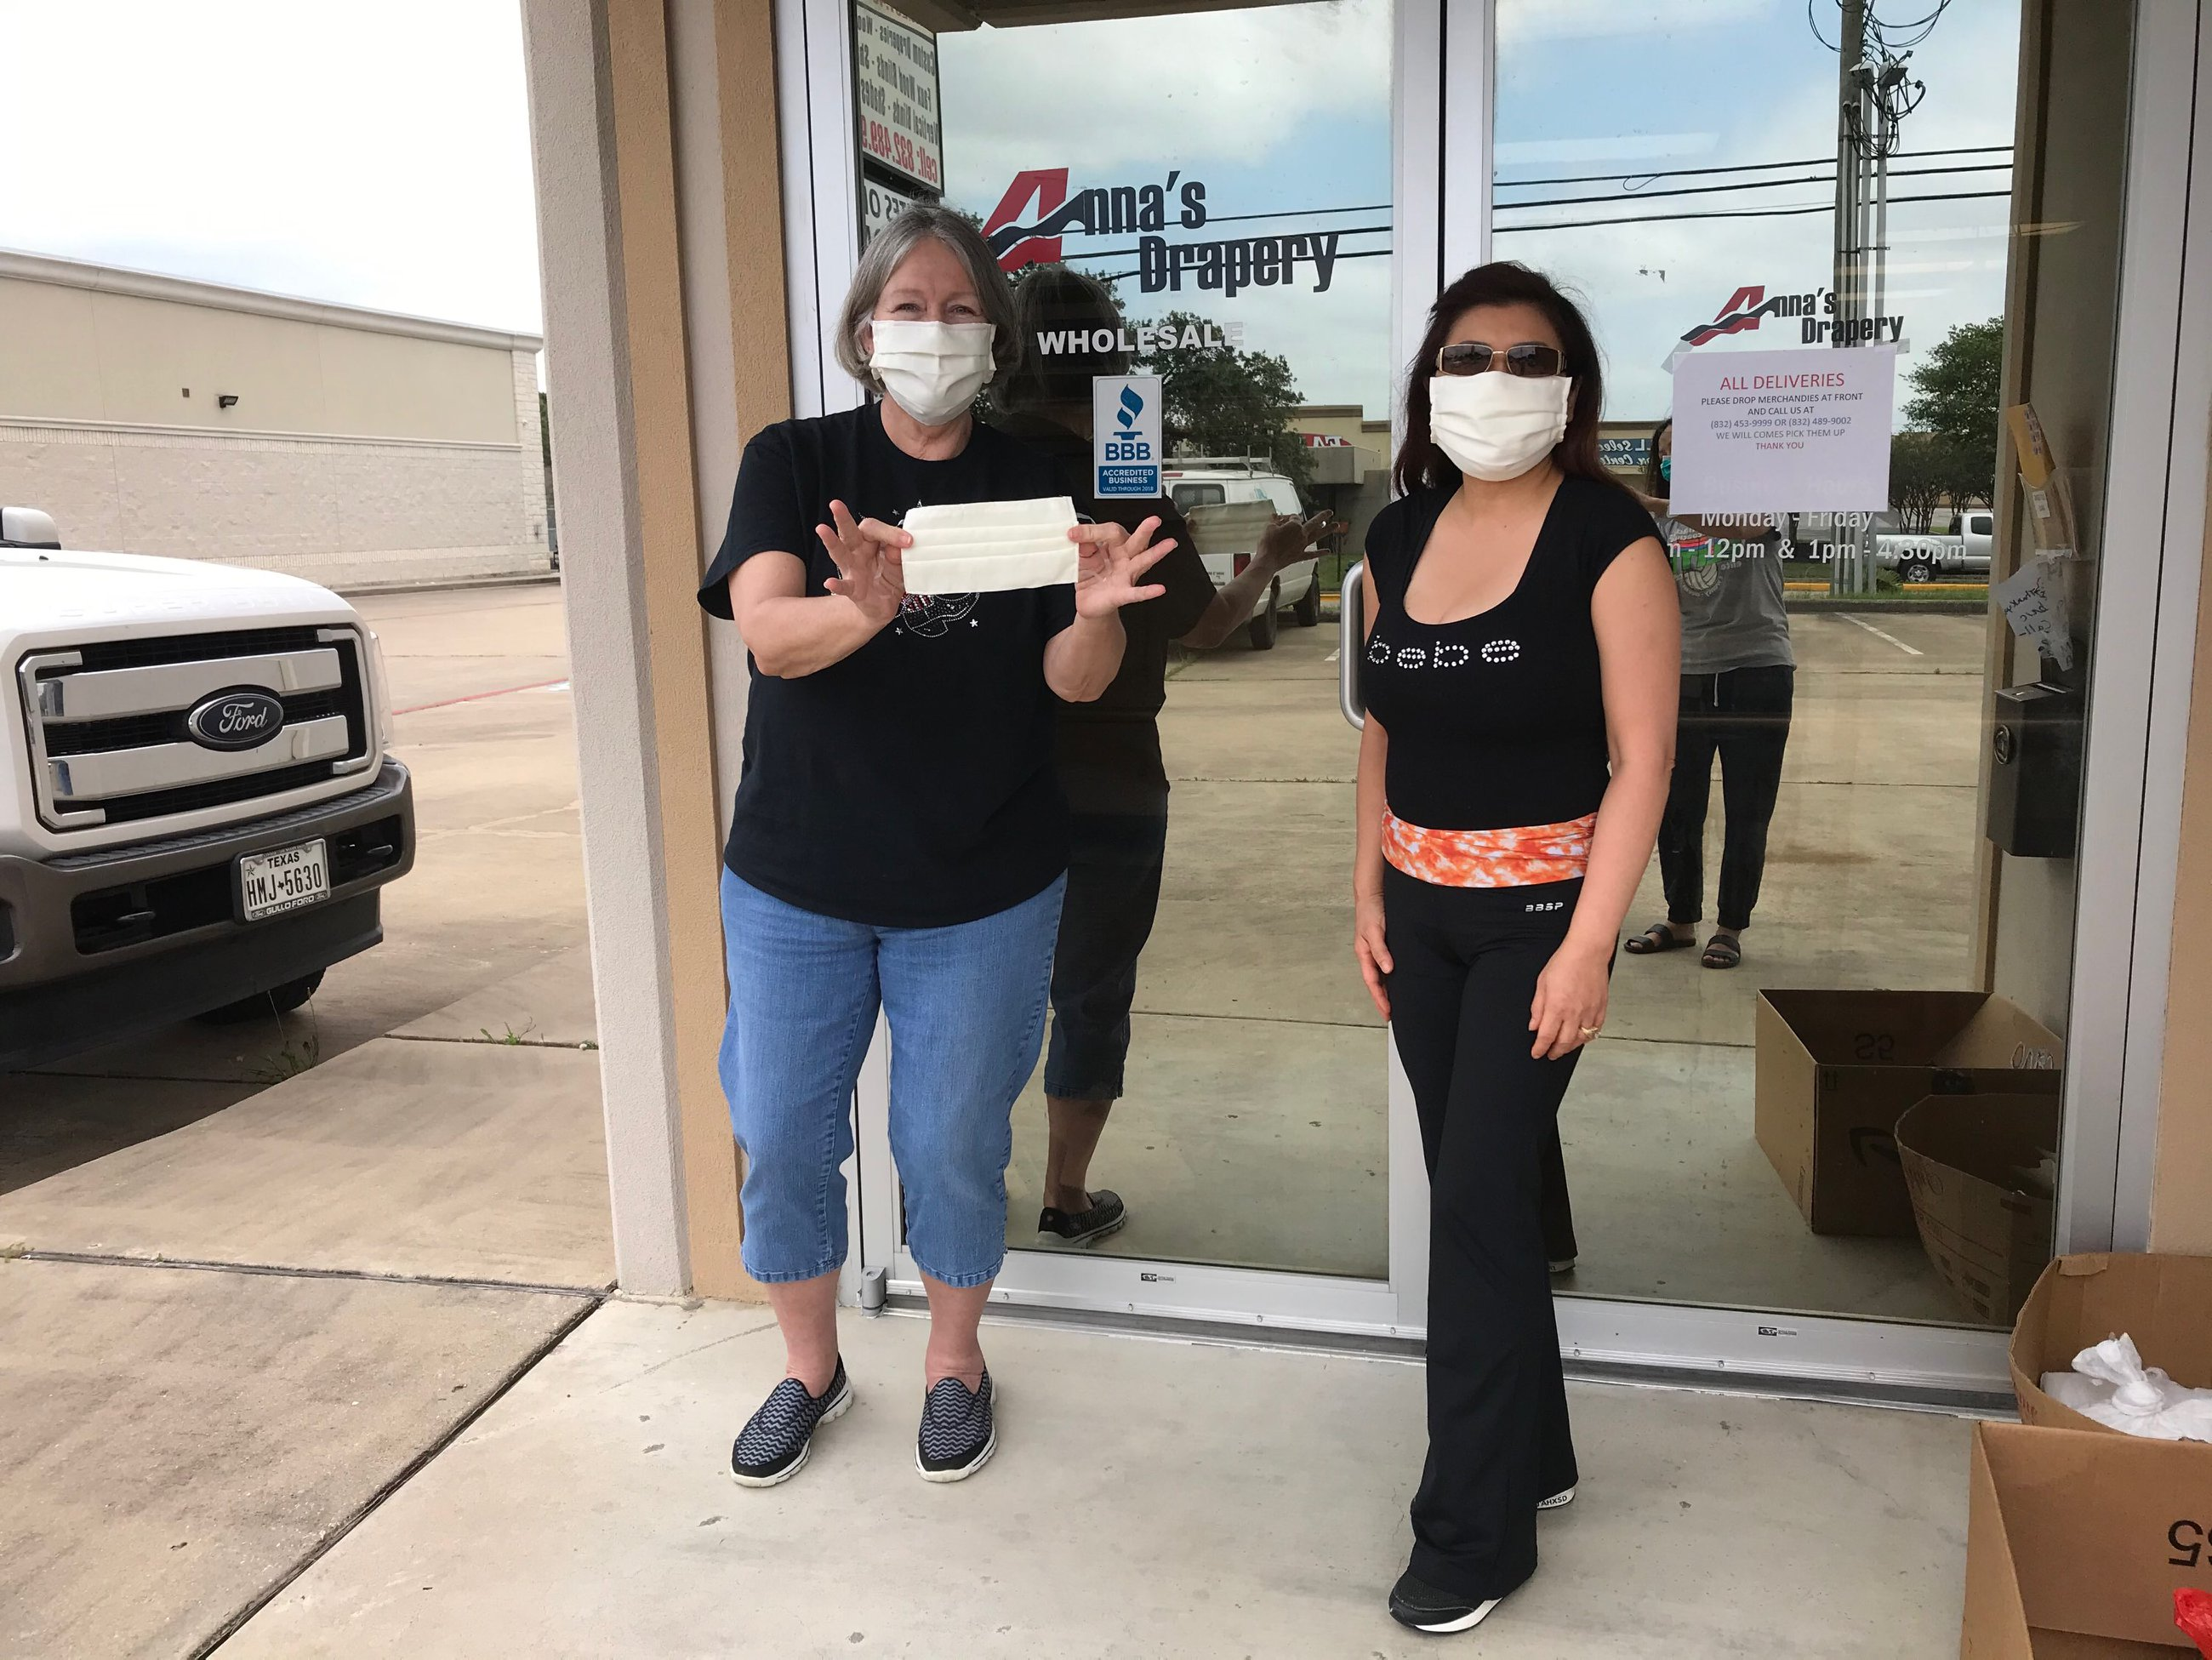 How a Selfless Houston Drapery Business is Helping Essential Workers